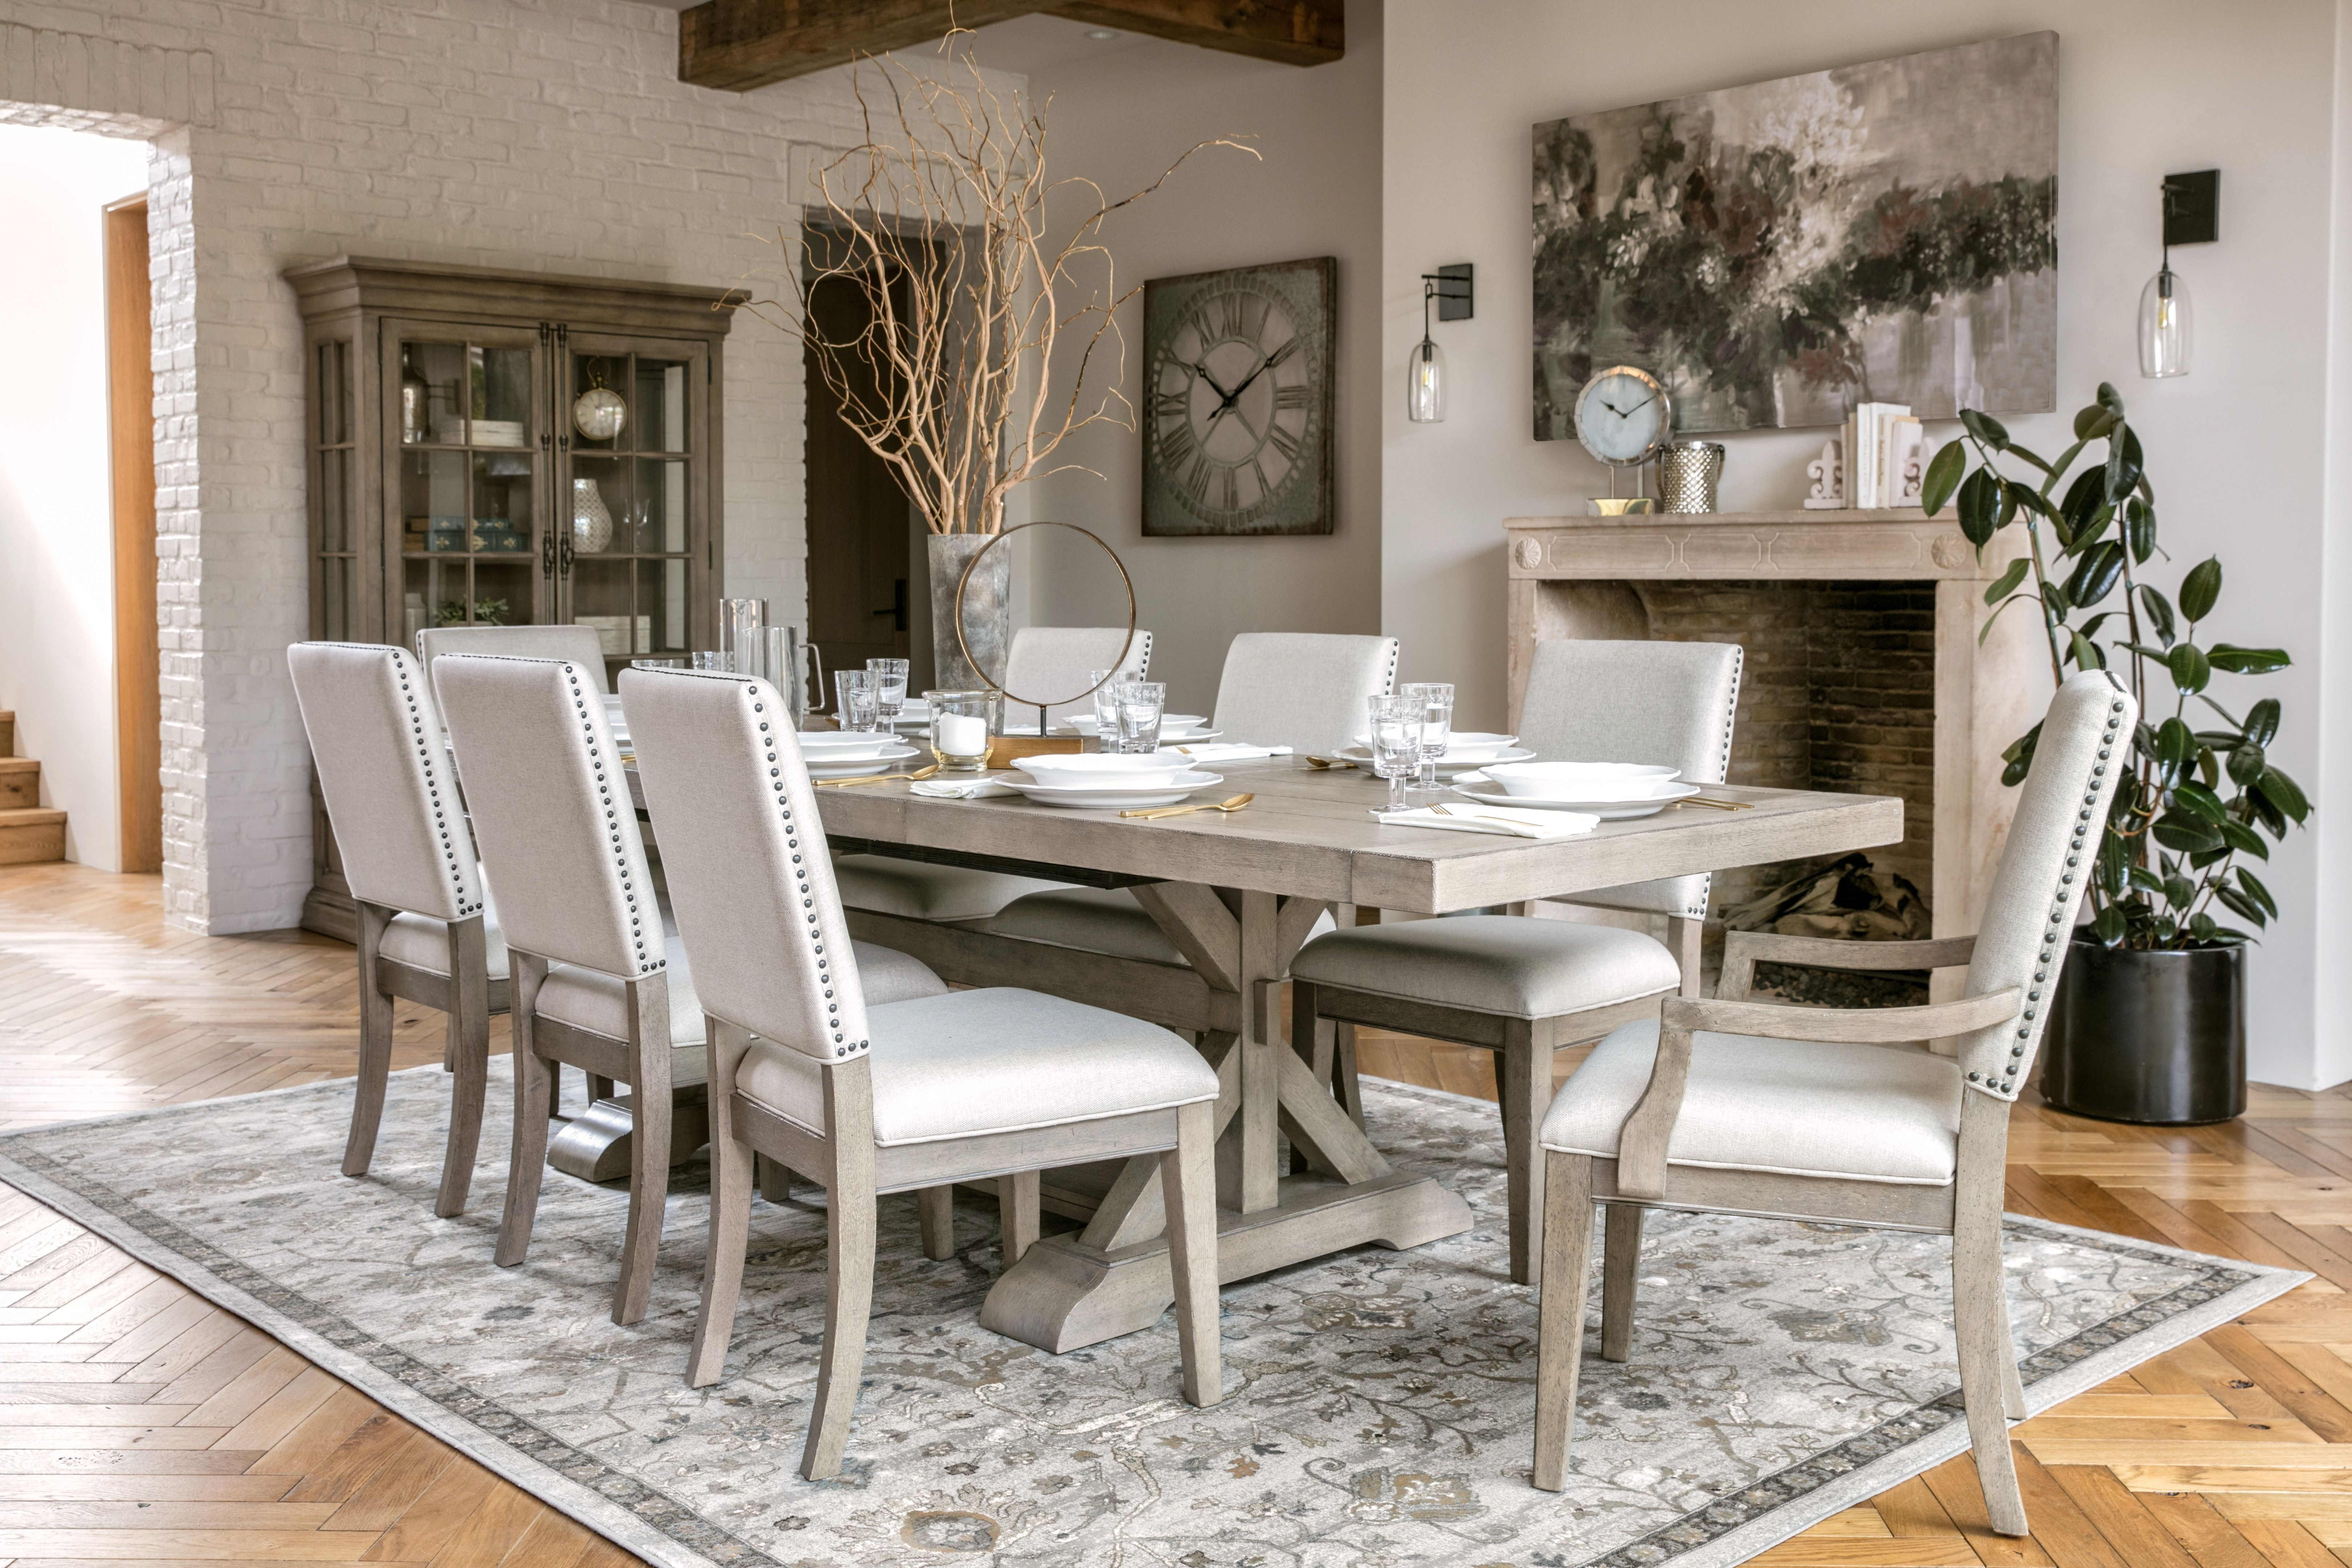 Walden 9 Piece Extension Dining Set | Nailhead Trim, Side Chair And With Regard To Current Norwood 7 Piece Rectangular Extension Dining Sets With Bench & Uph Side Chairs (Image 19 of 20)